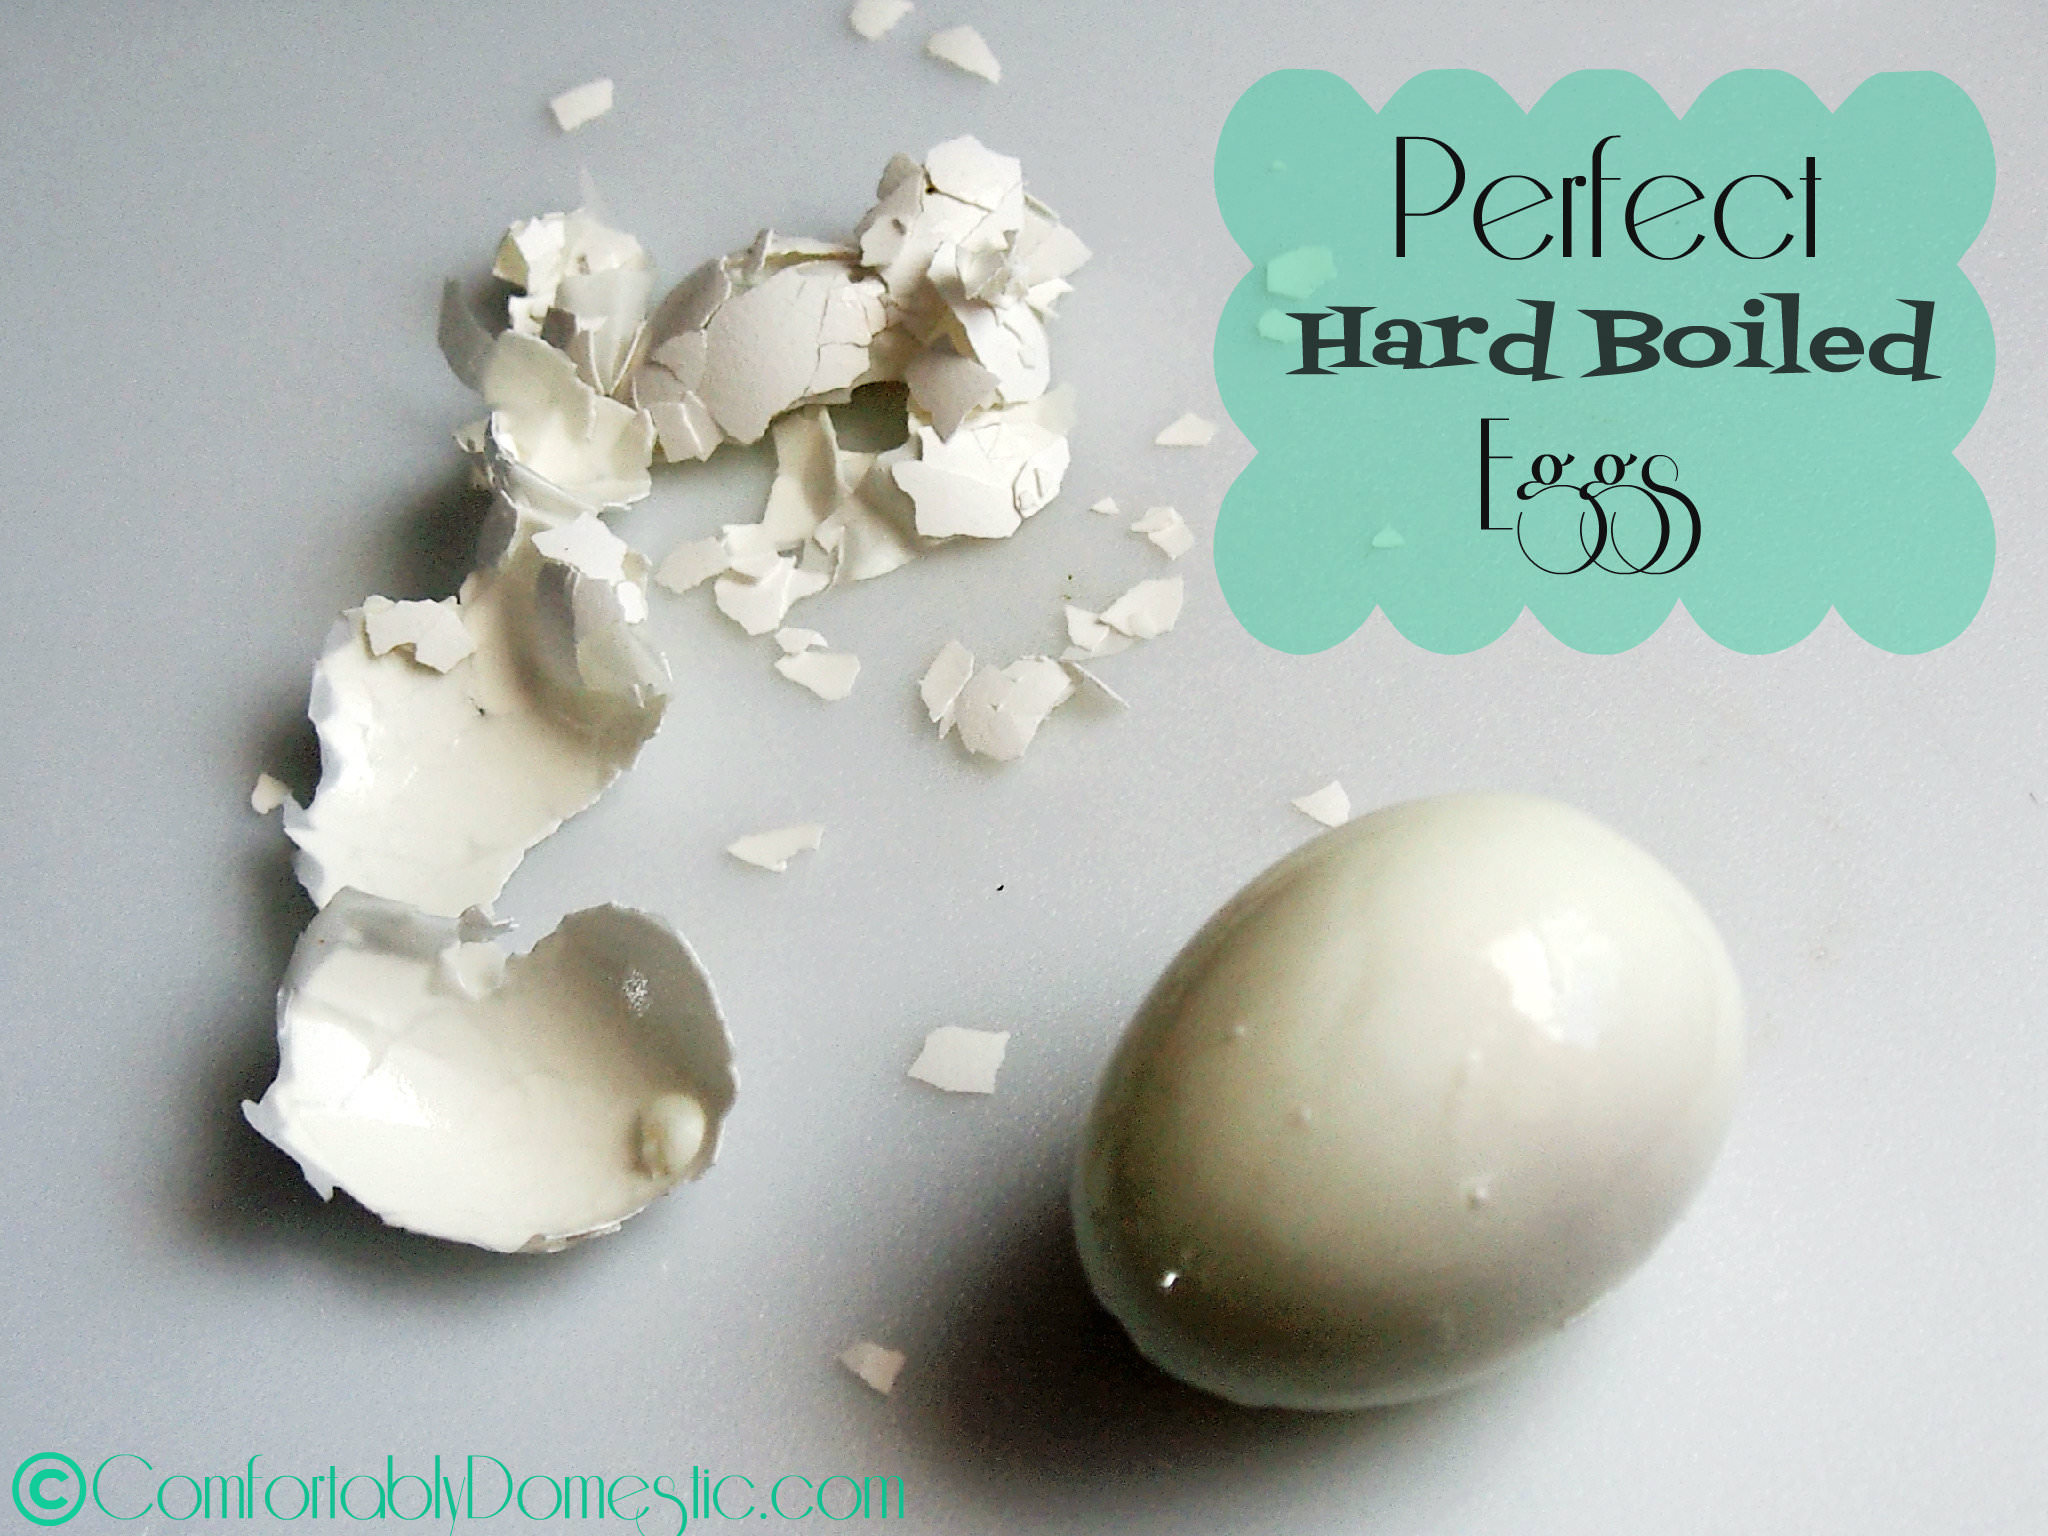 Perfect Hard Boiled Eggs via ComfortablyDomestic.com